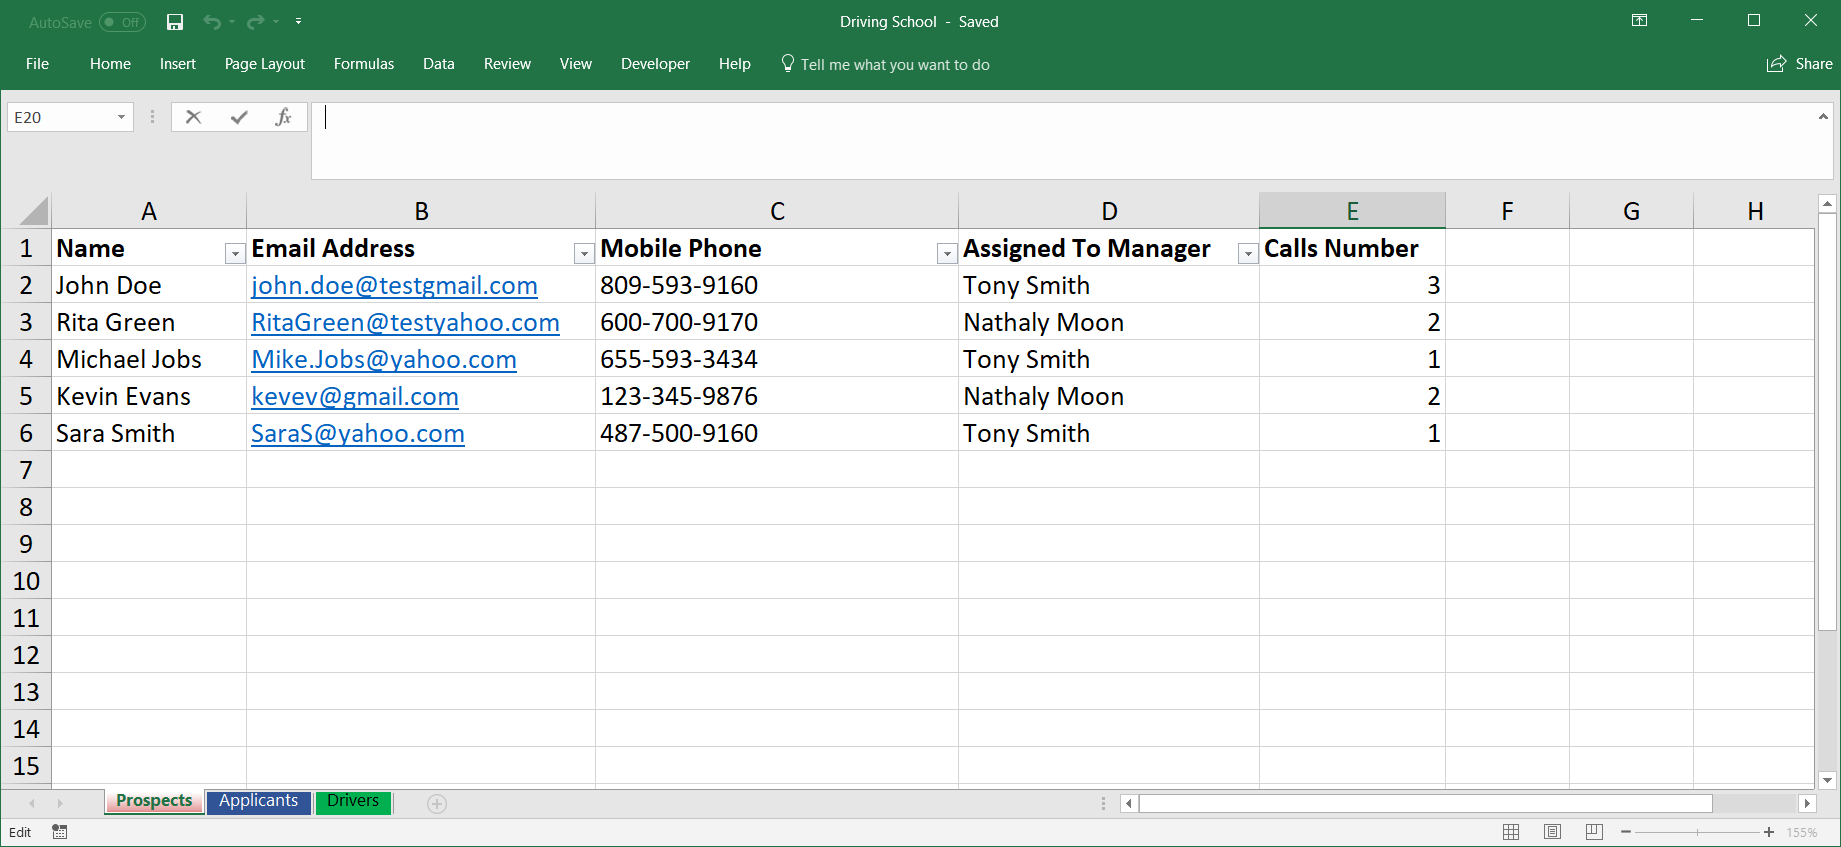 Drivers Hours Spreadsheet In How To Merge Multiple